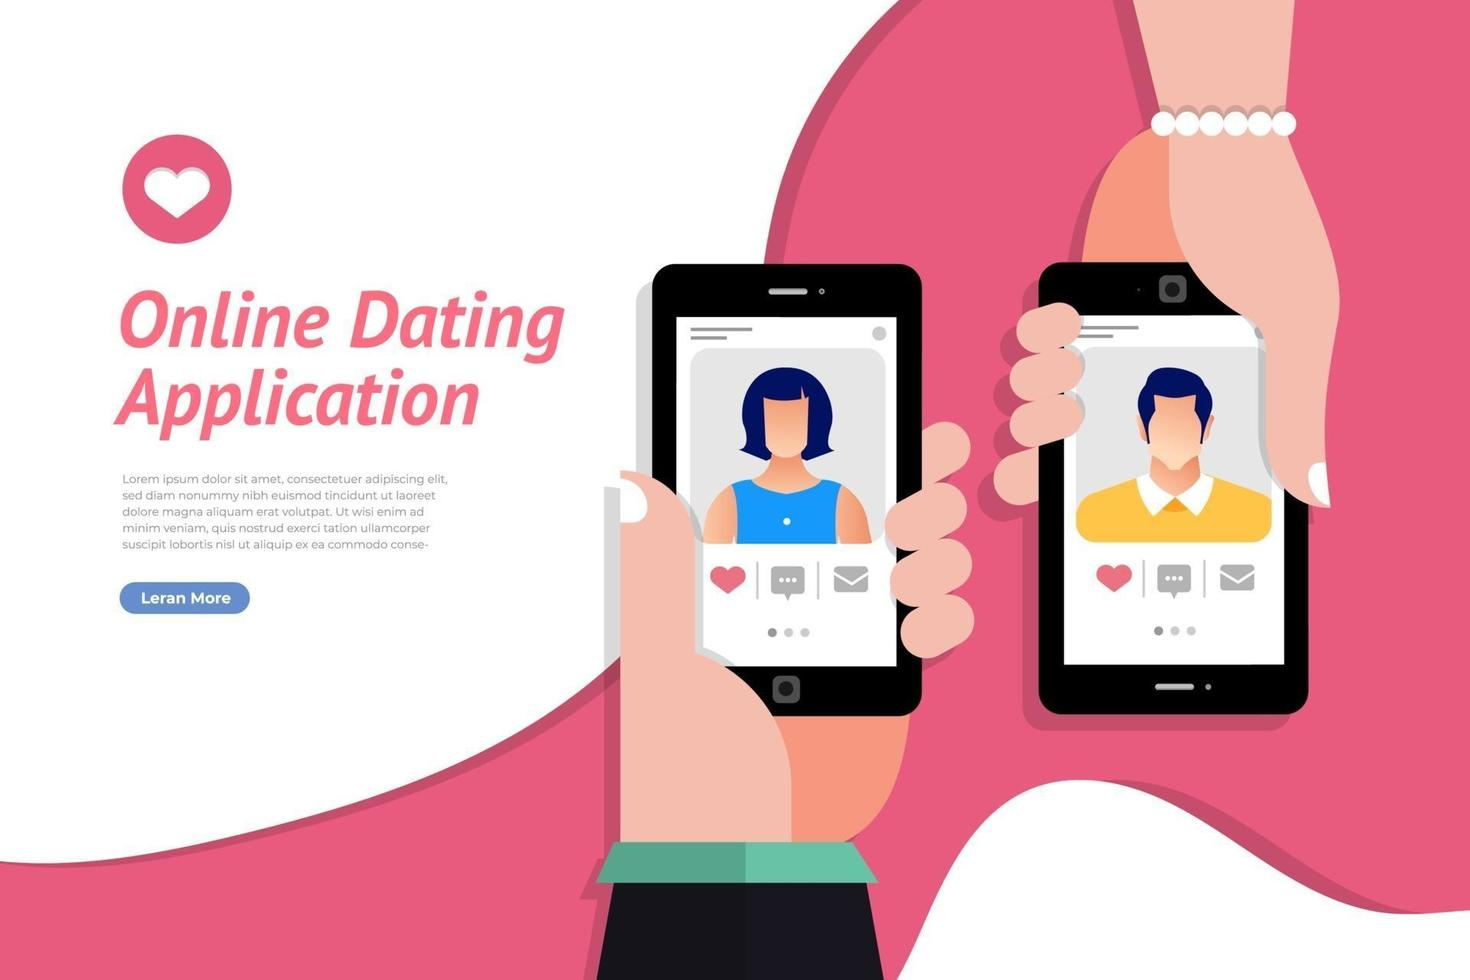 How to register on an online dating app